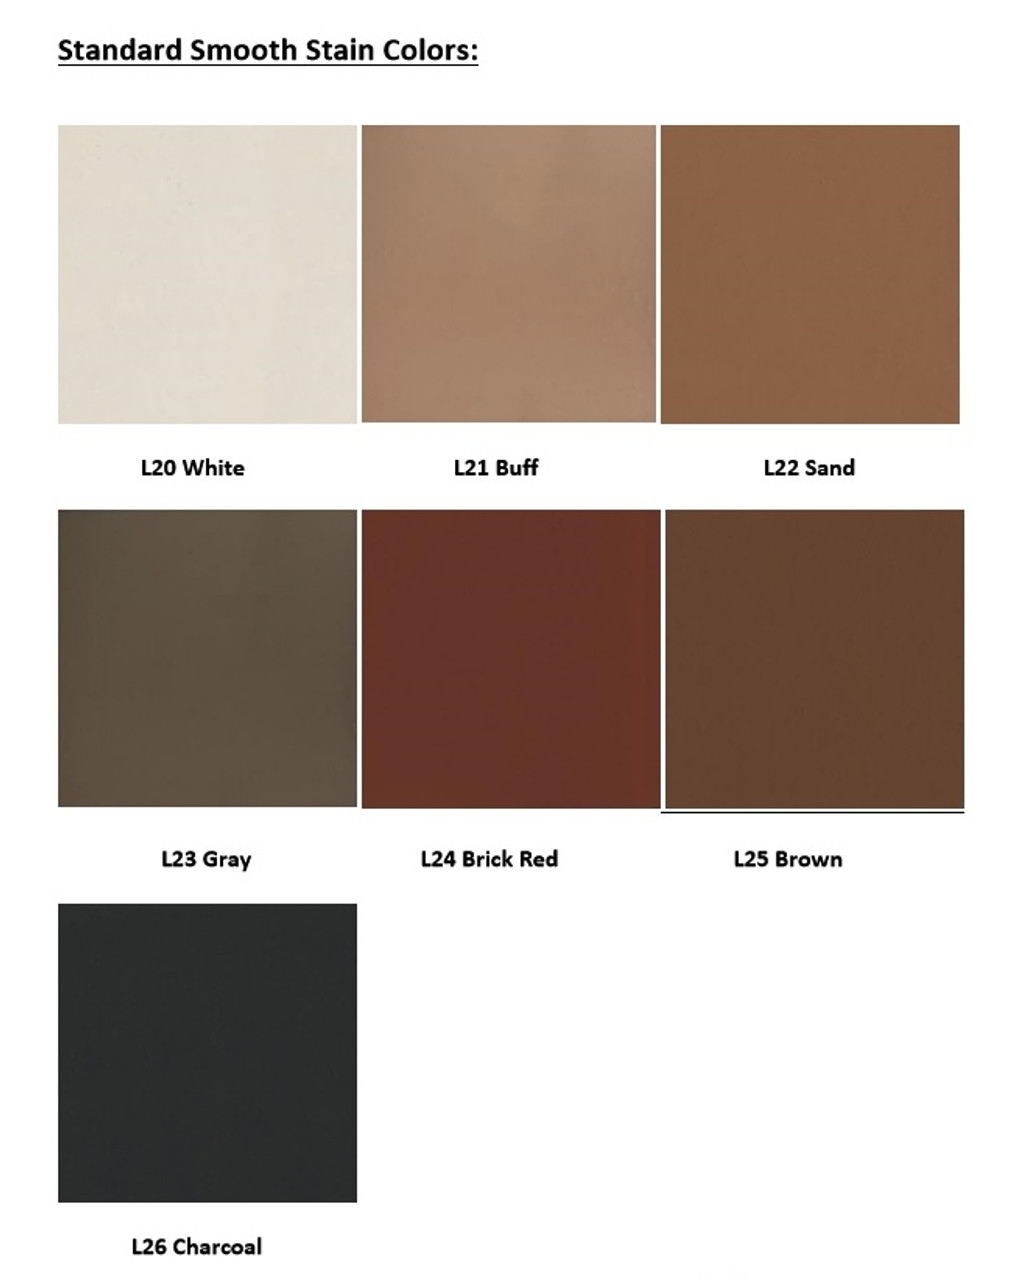 Smooth Stain Colors